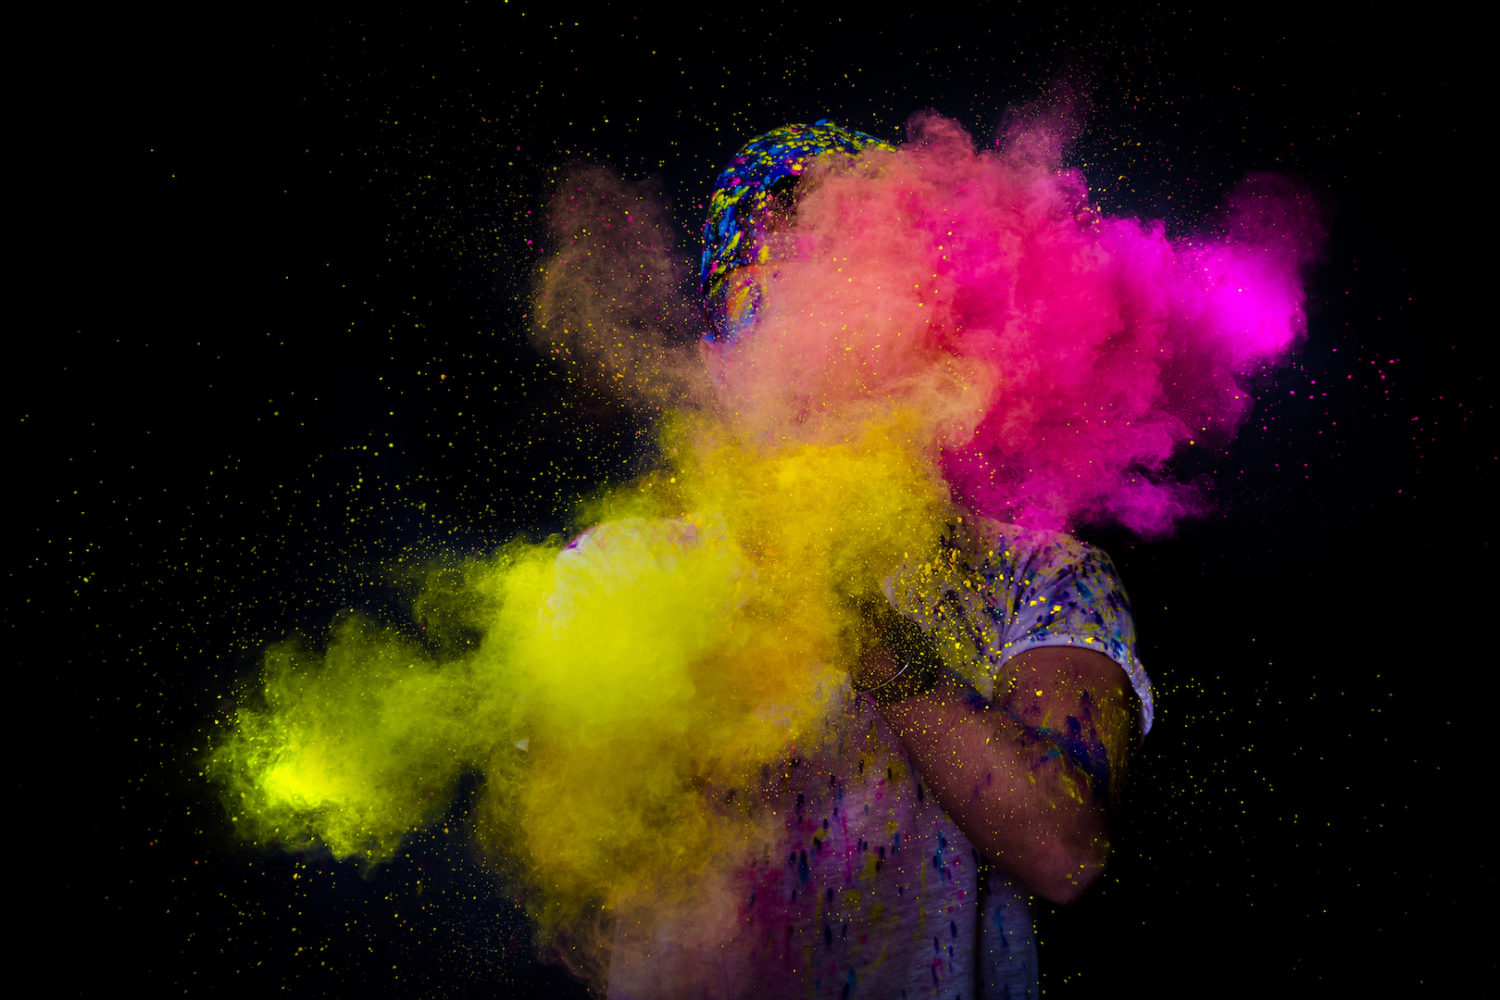 This week in Editors' Choice: Bold colors, action shots, and one-eyed subjects